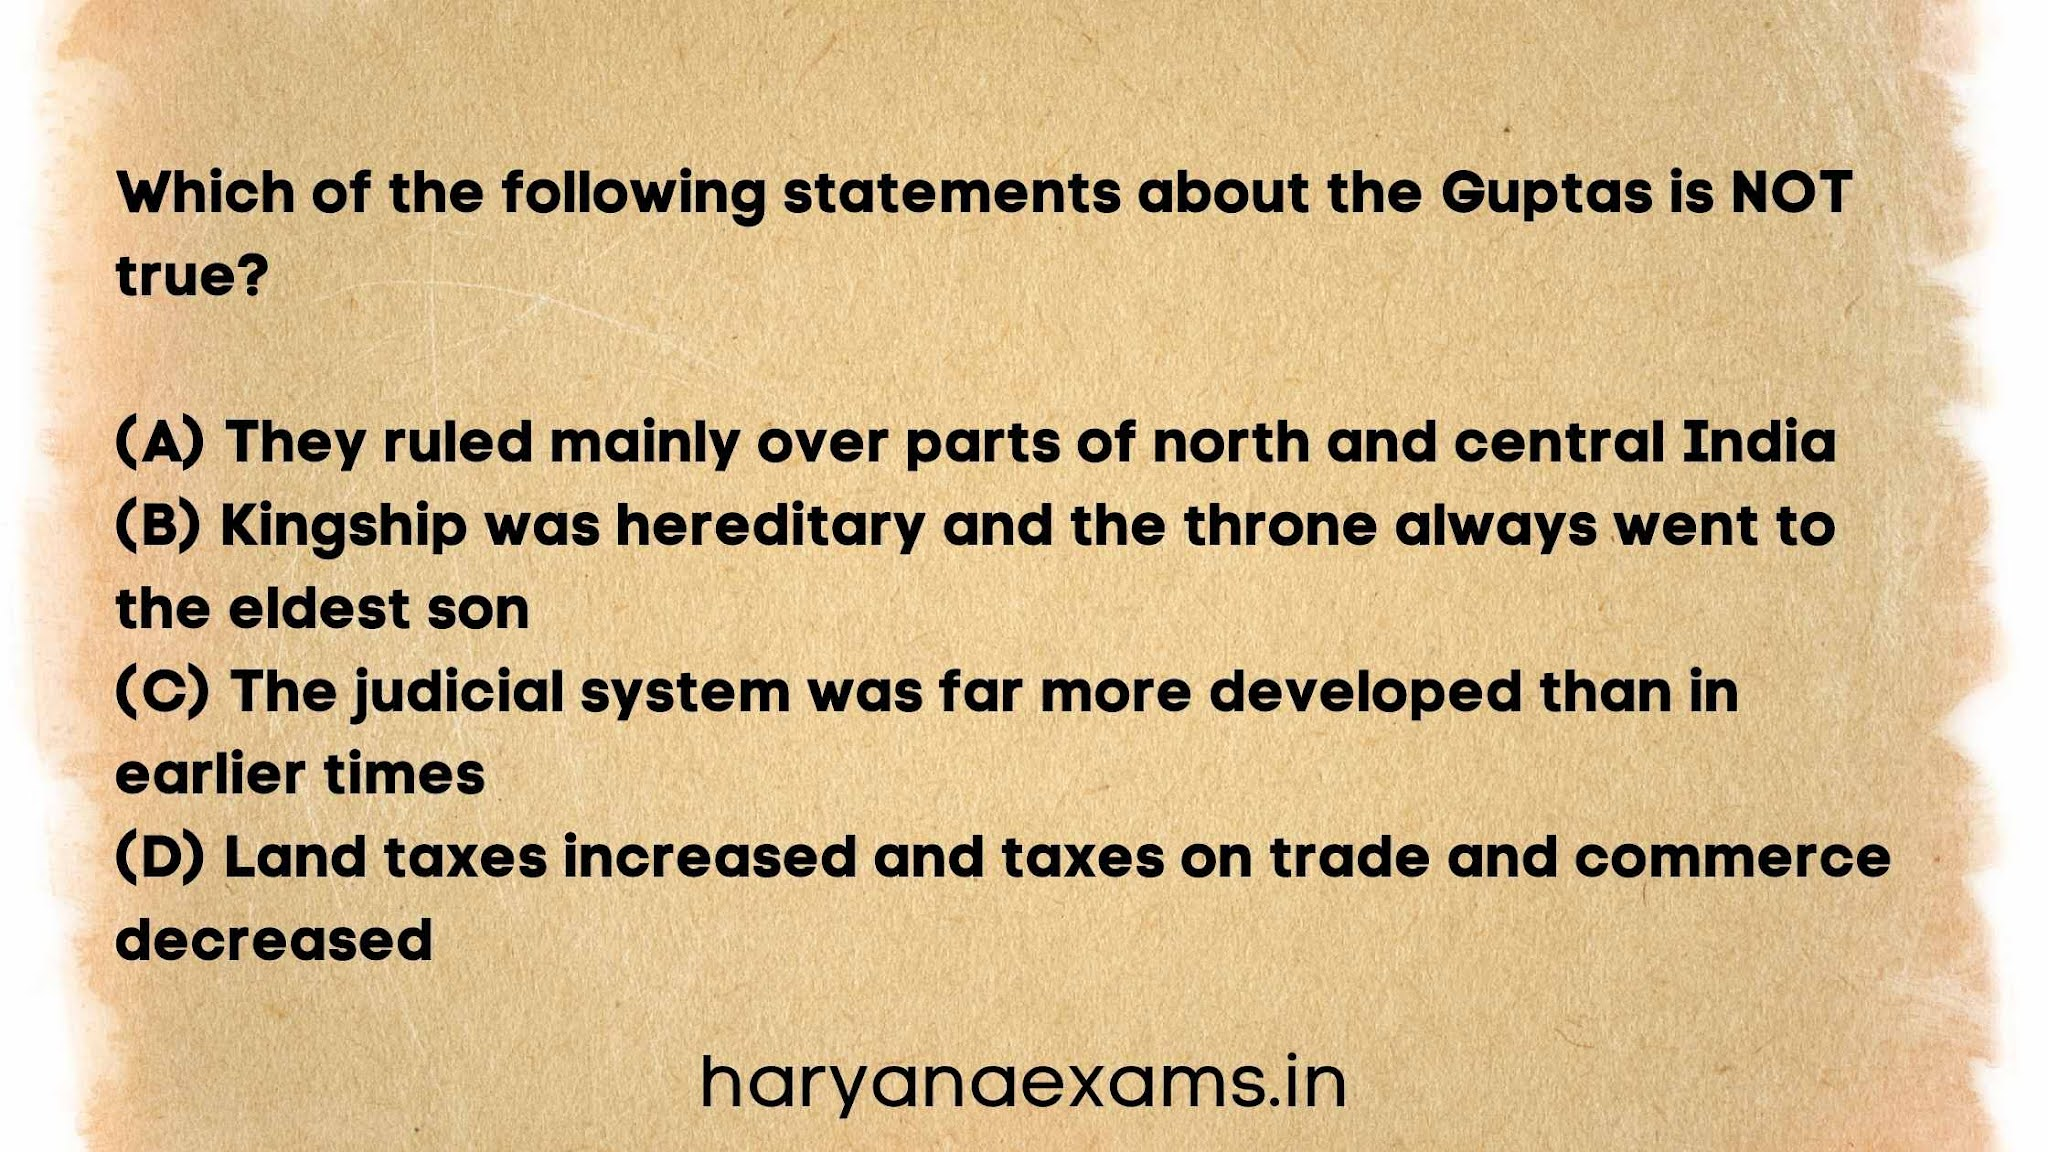 Which of the following statements about the Guptas is NOT true?   (A) They ruled mainly over parts of north and central India   (B) Kingship was hereditary and the throne always went to the eldest son   (C) The judicial system was far more developed than in earlier times   (D) Land taxes increased and taxes on trade and commerce decreased